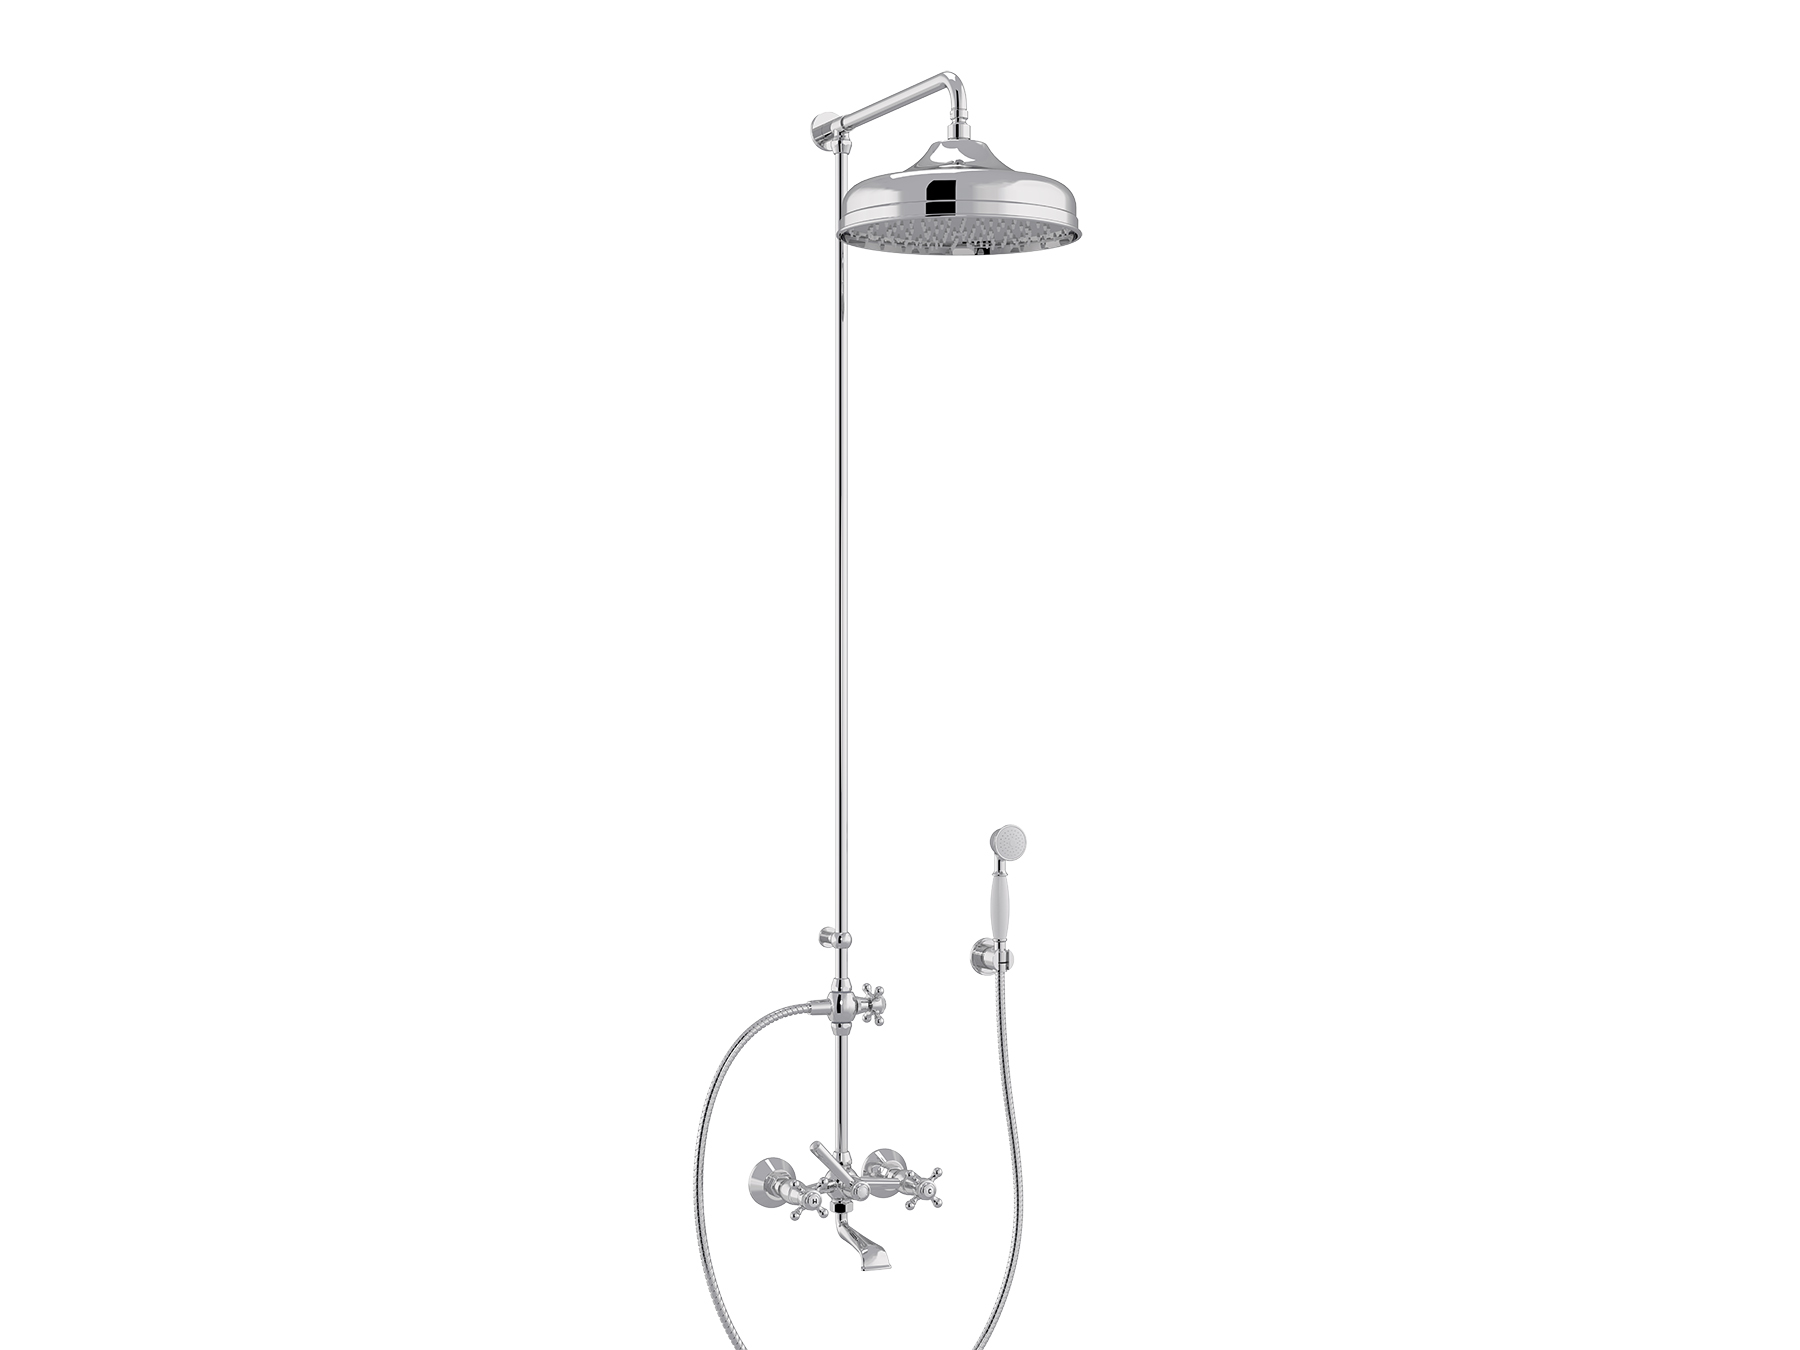 Set bath-shower mixer, head Ø300mm 1921.--.76